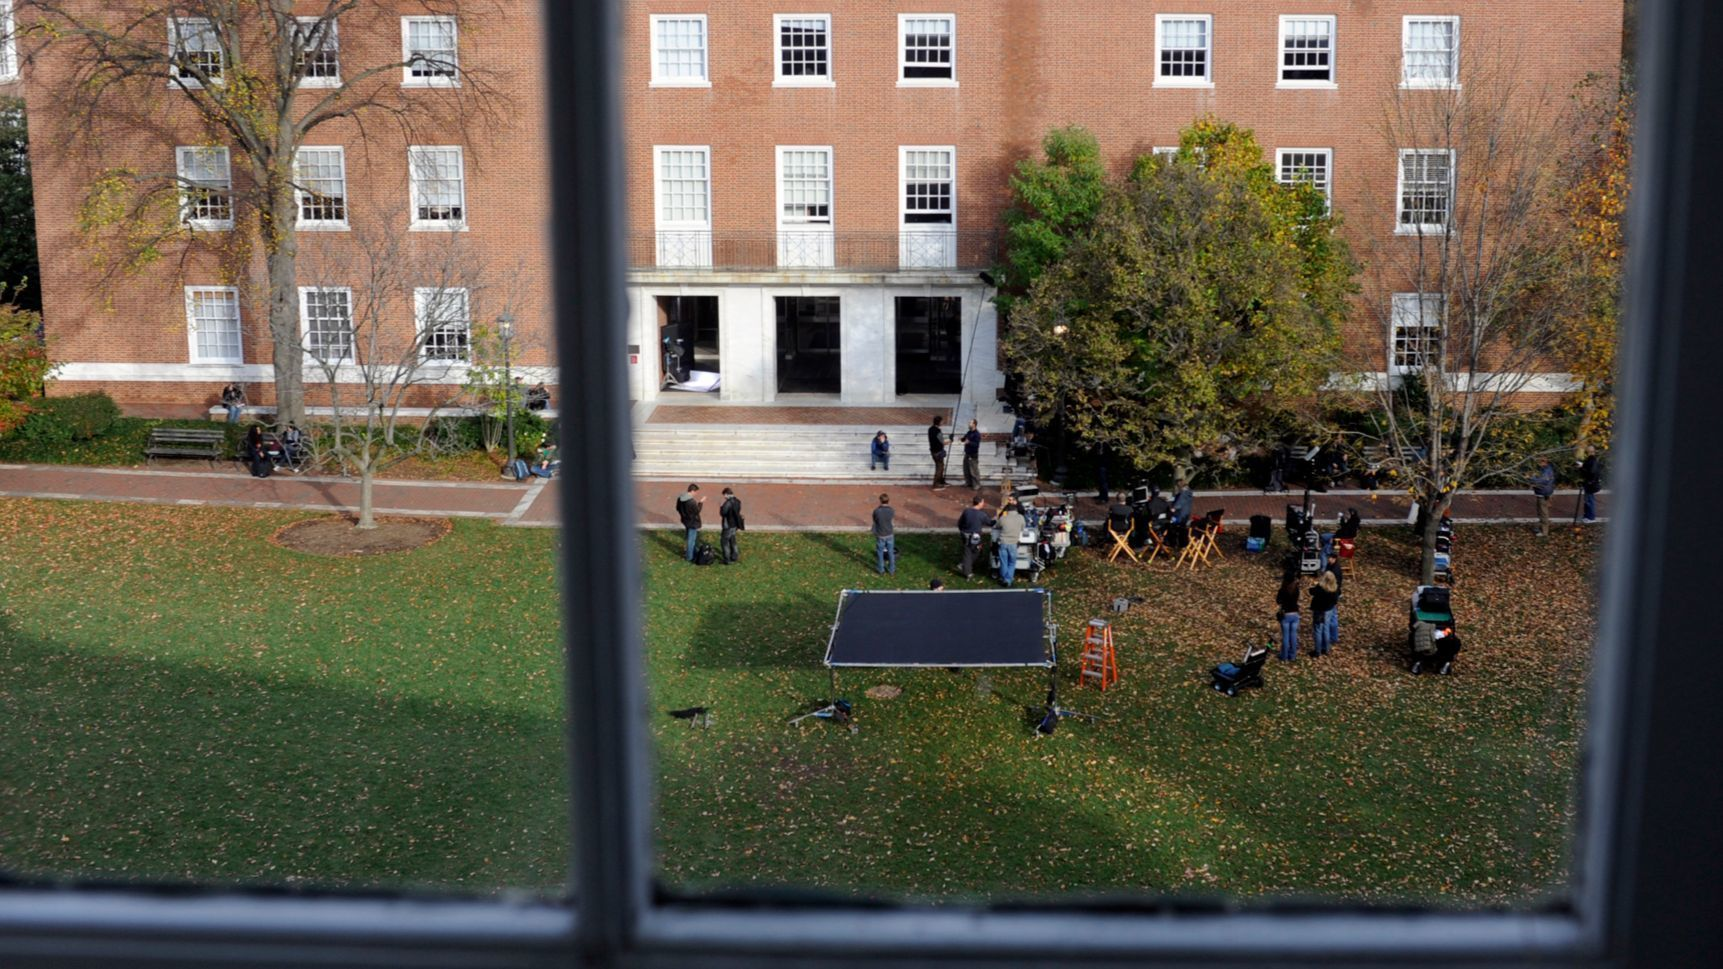 Hopkins maryland umbc ranked among top colleges by u s news and world report baltimore sun